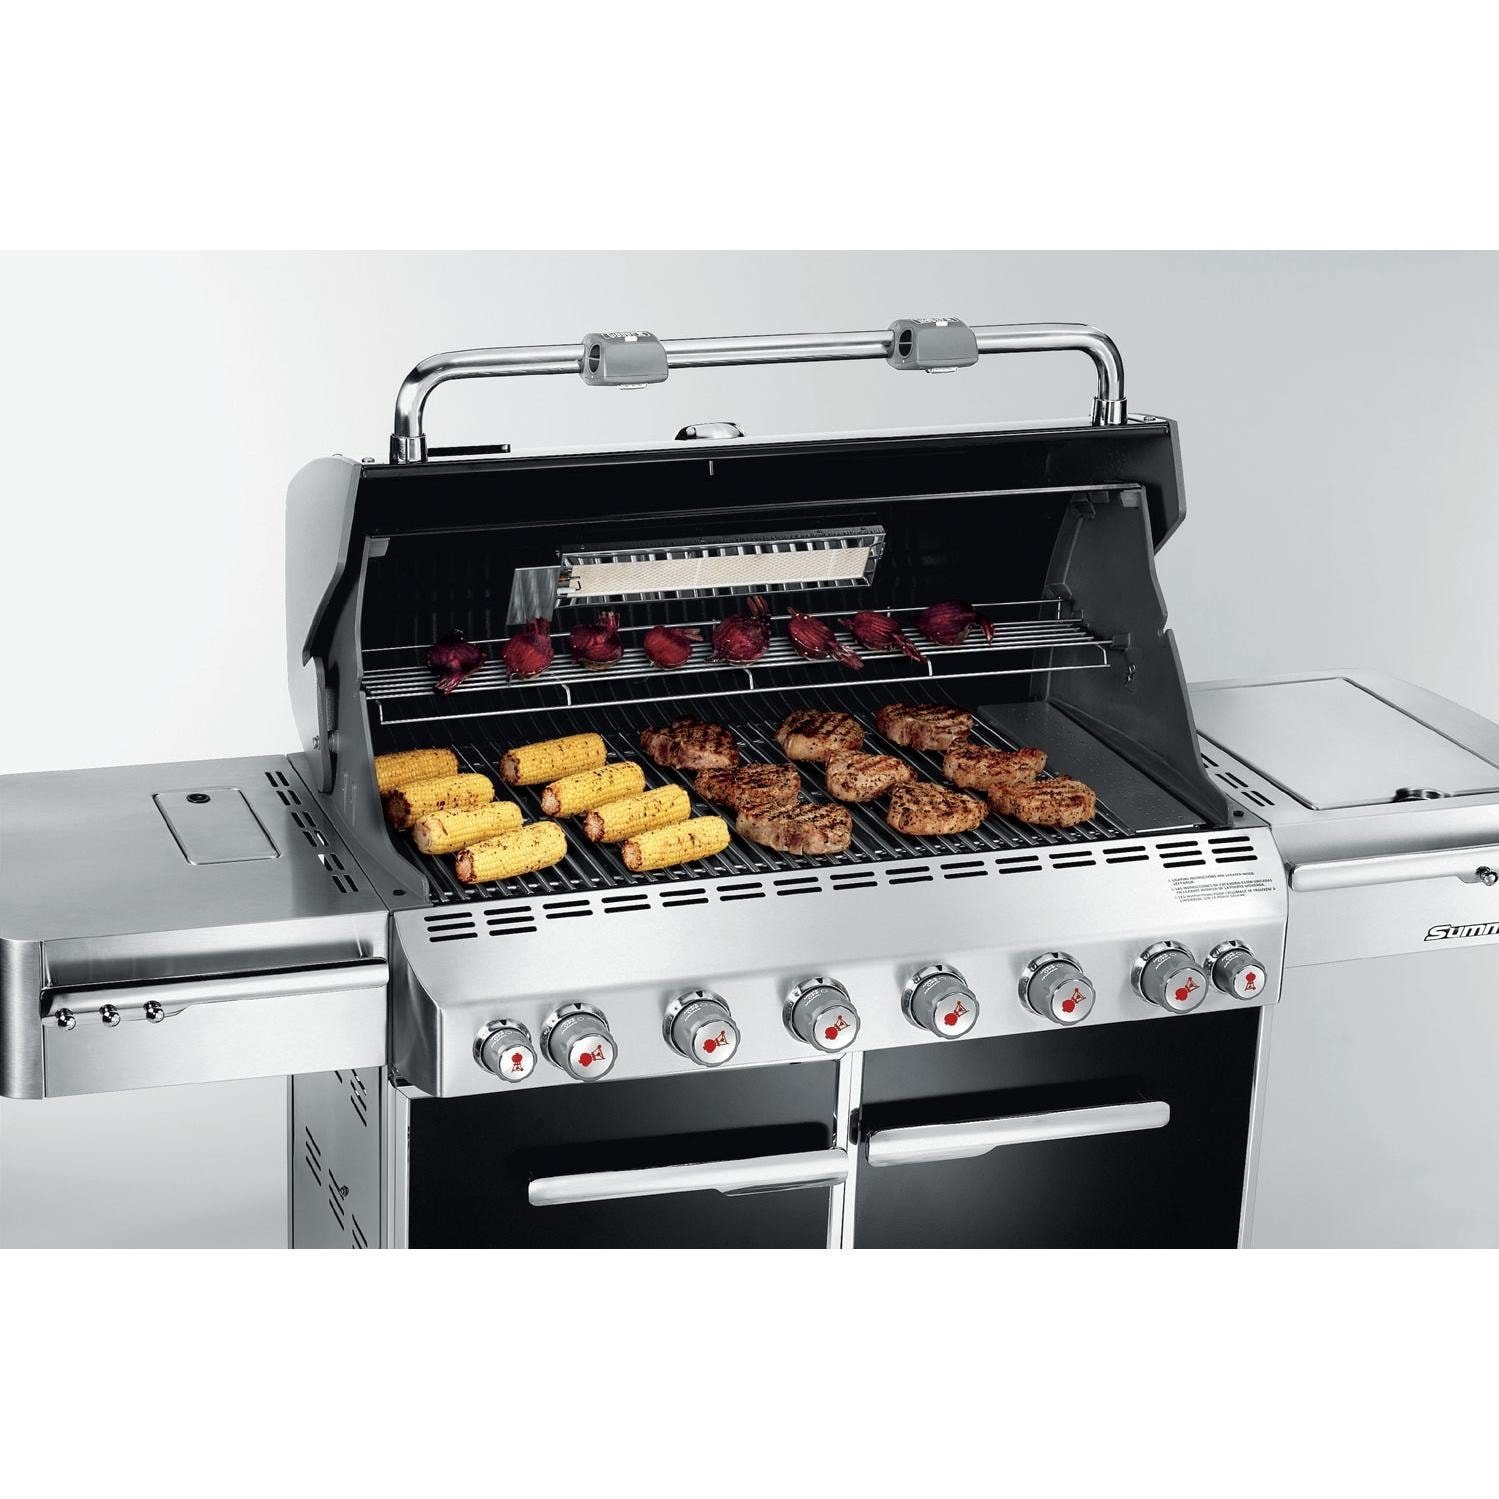 weber gas grills summit e 650 propane gas bbq grill w. Black Bedroom Furniture Sets. Home Design Ideas